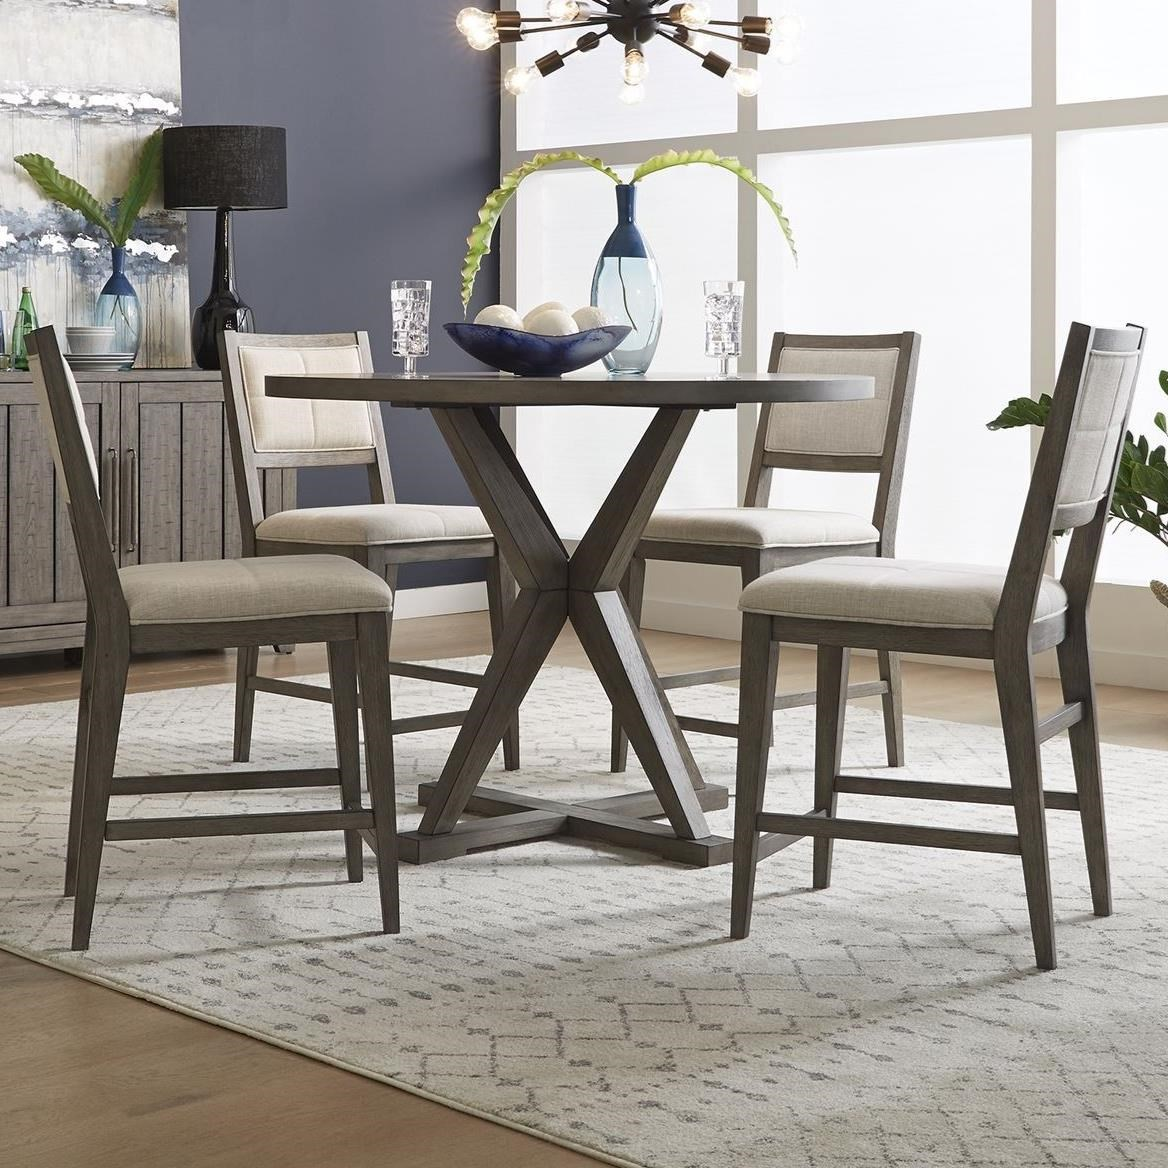 Crescent Creek 5-Piece Gathering Table Set by Liberty Furniture at Northeast Factory Direct